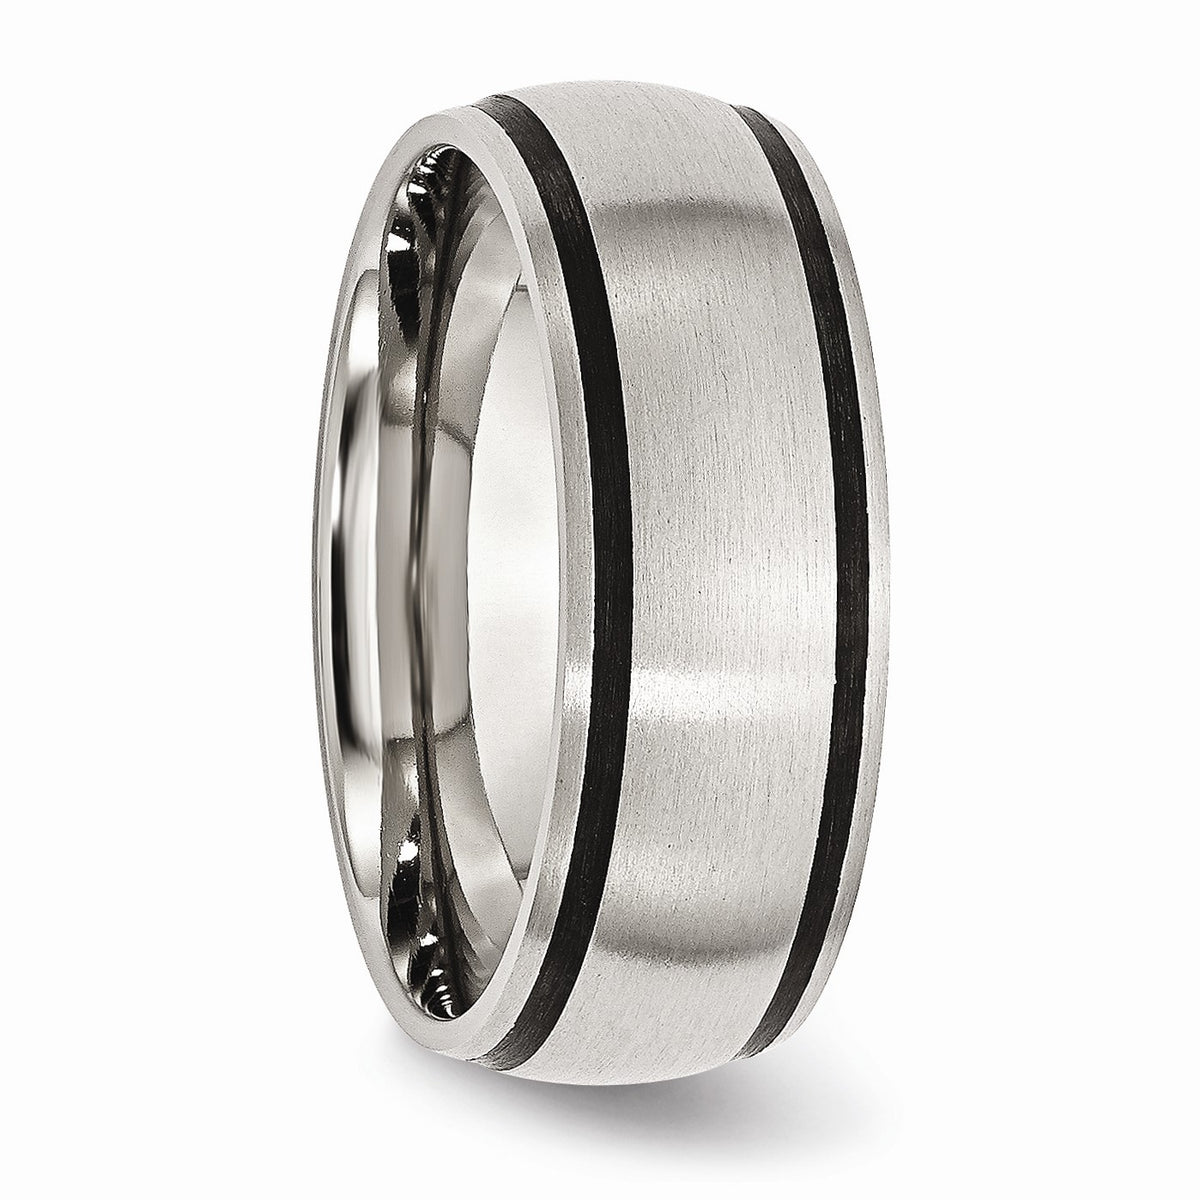 Alternate view of the Stainless Steel & Black Rubber, 8mm Satin Standard Fit Band by The Black Bow Jewelry Co.